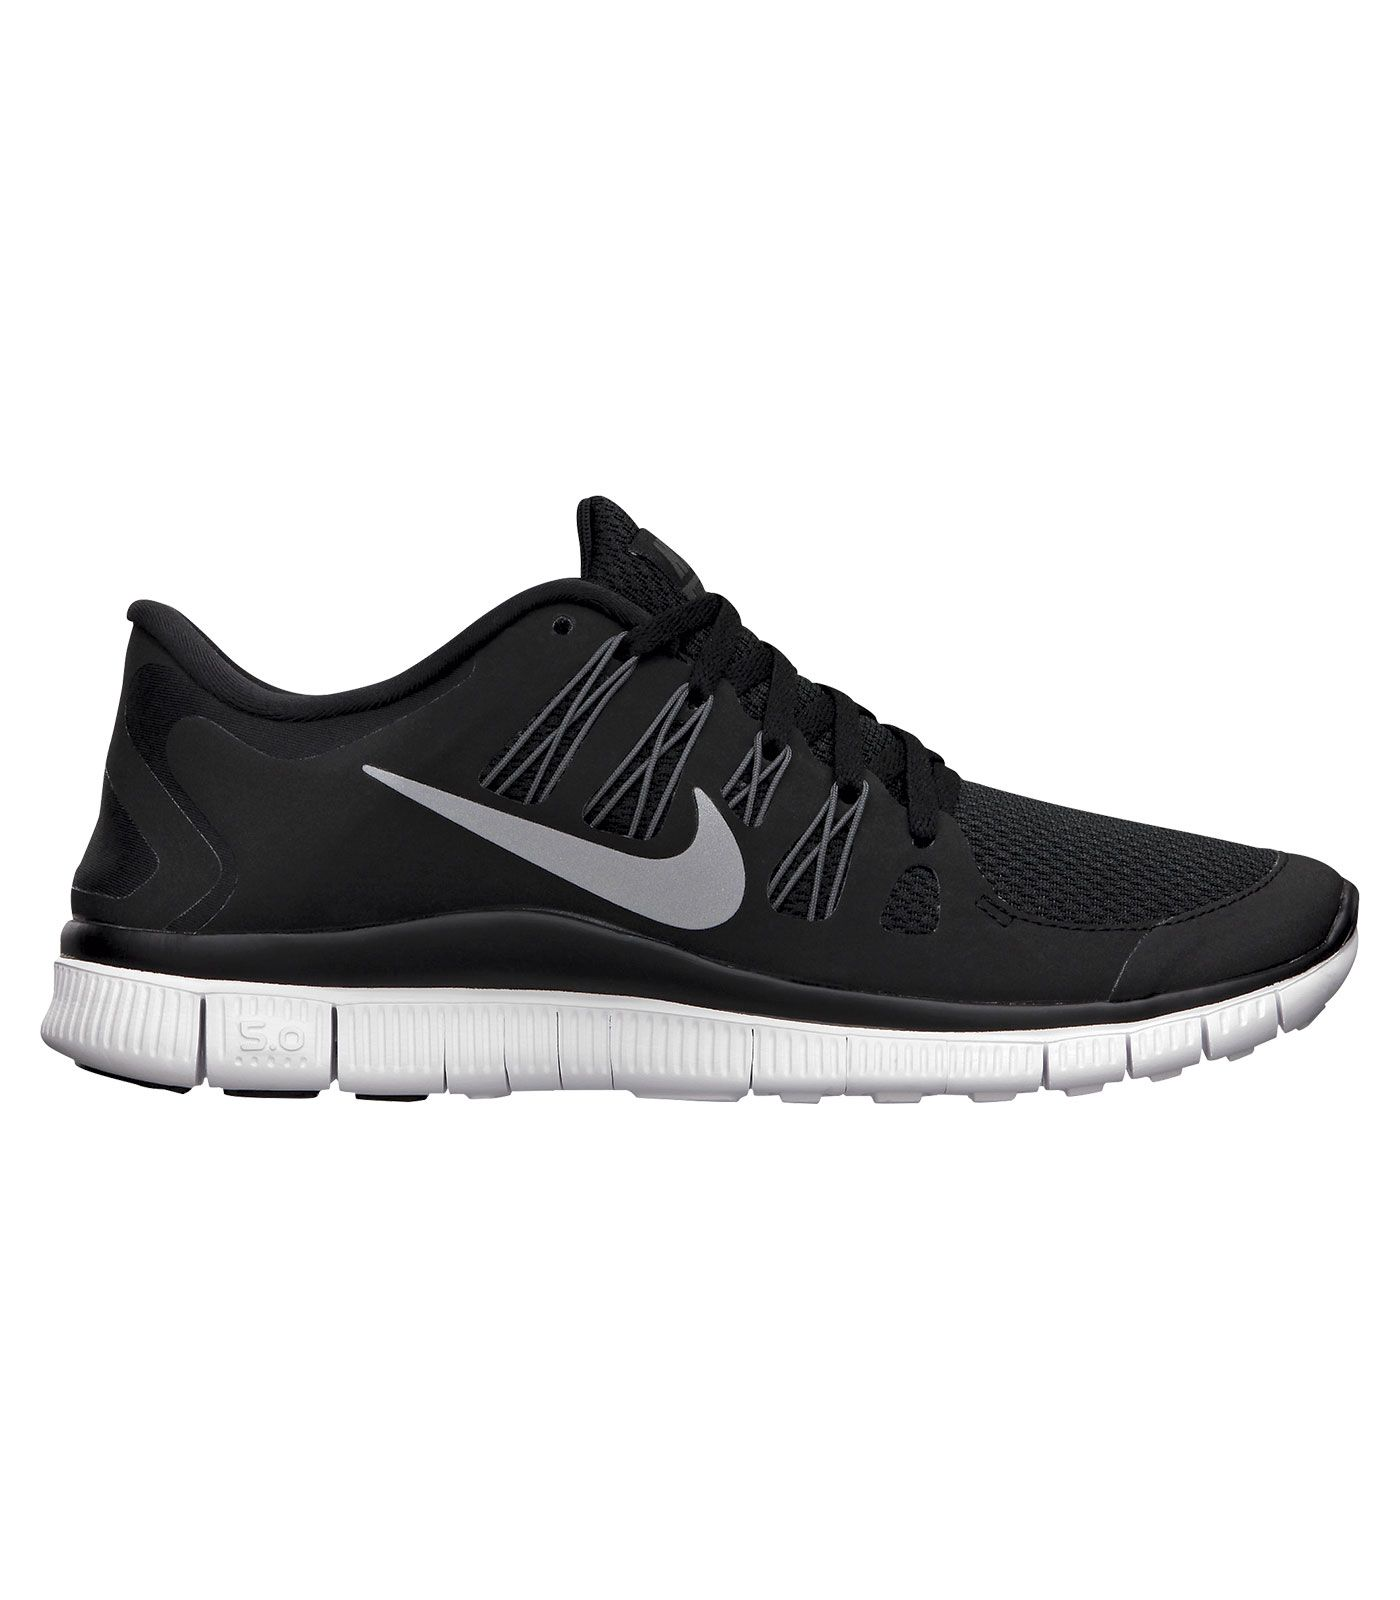 best service 62b1b c5f04 Nike Plus Free 5.0 - Chaussures - Femme - Course pied   Sports Experts